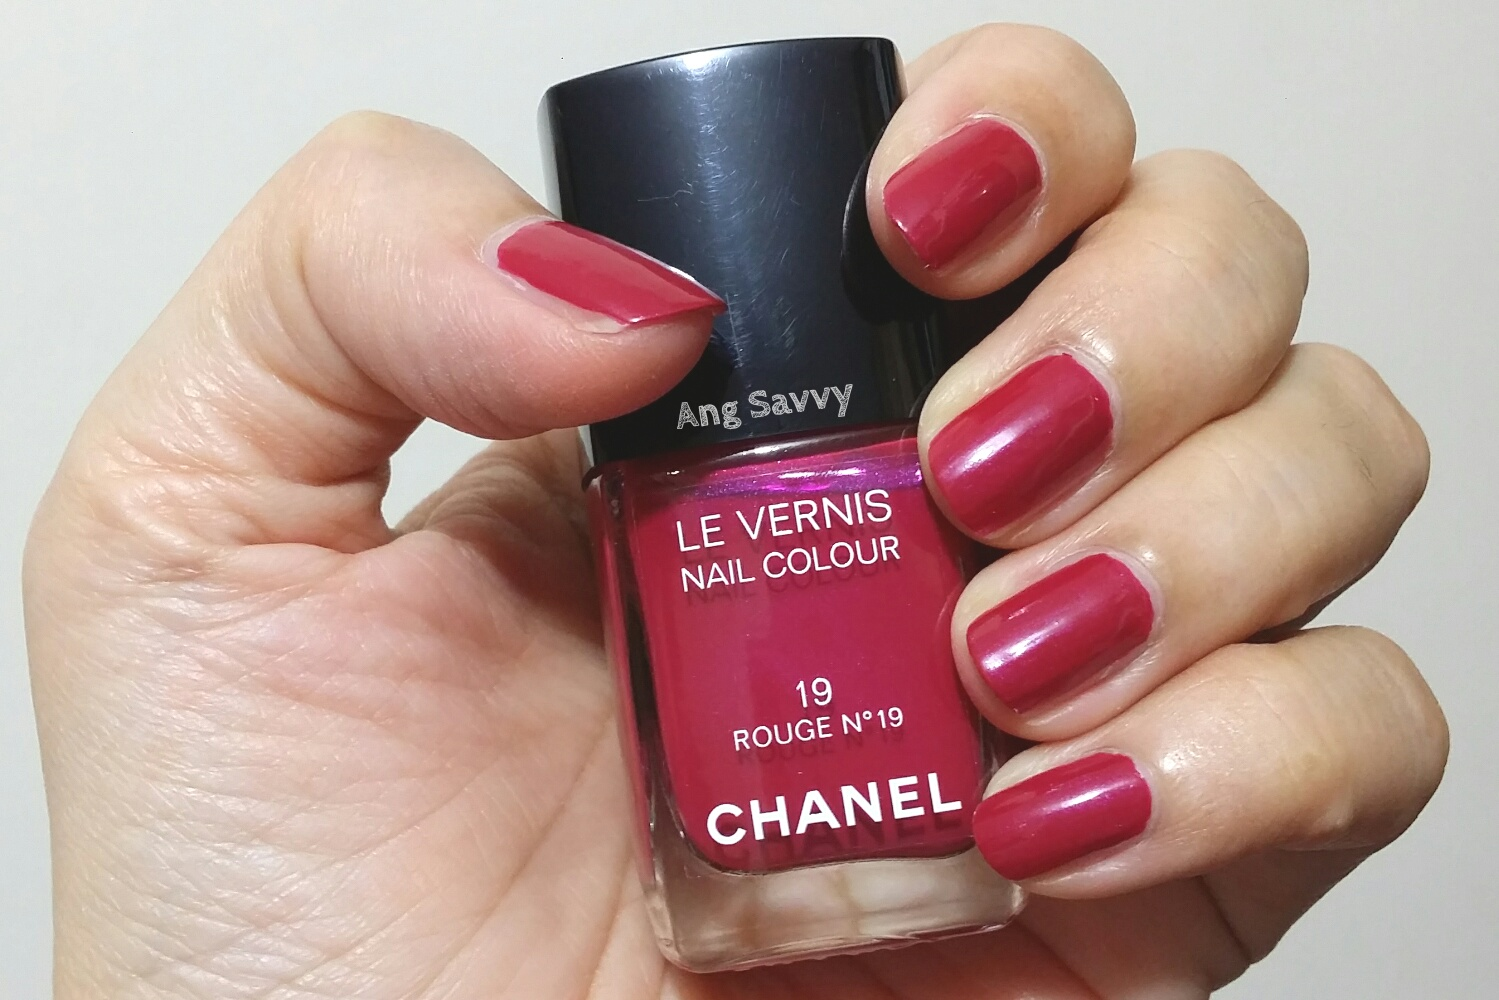 chanel rouge no 19 le vernis nail colour ang savvy. Black Bedroom Furniture Sets. Home Design Ideas